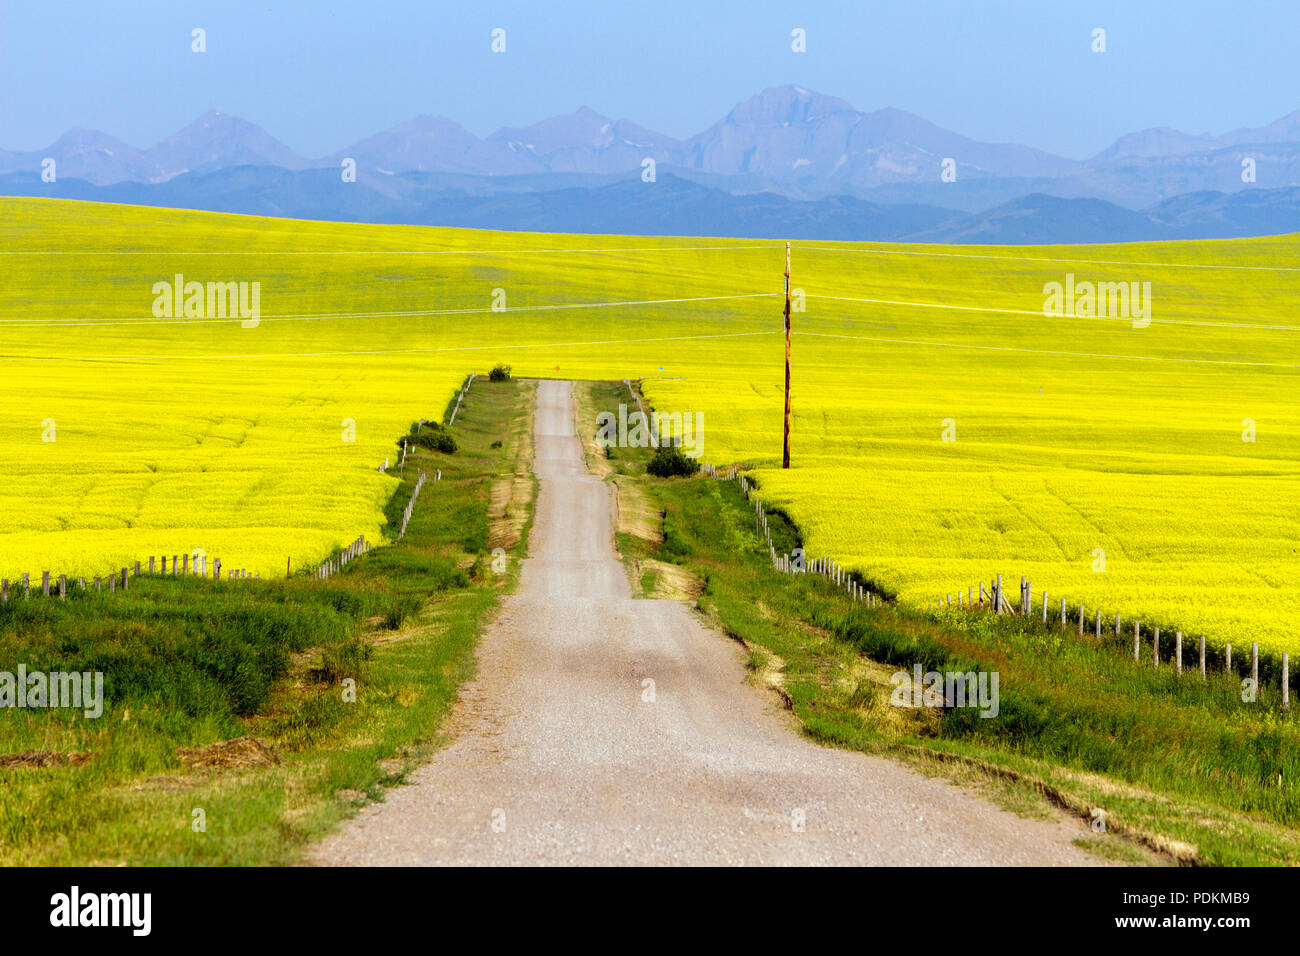 Surrounded By Canoloa Feilds Quotes: Country Farm Rural Canada Stock Photos & Country Farm